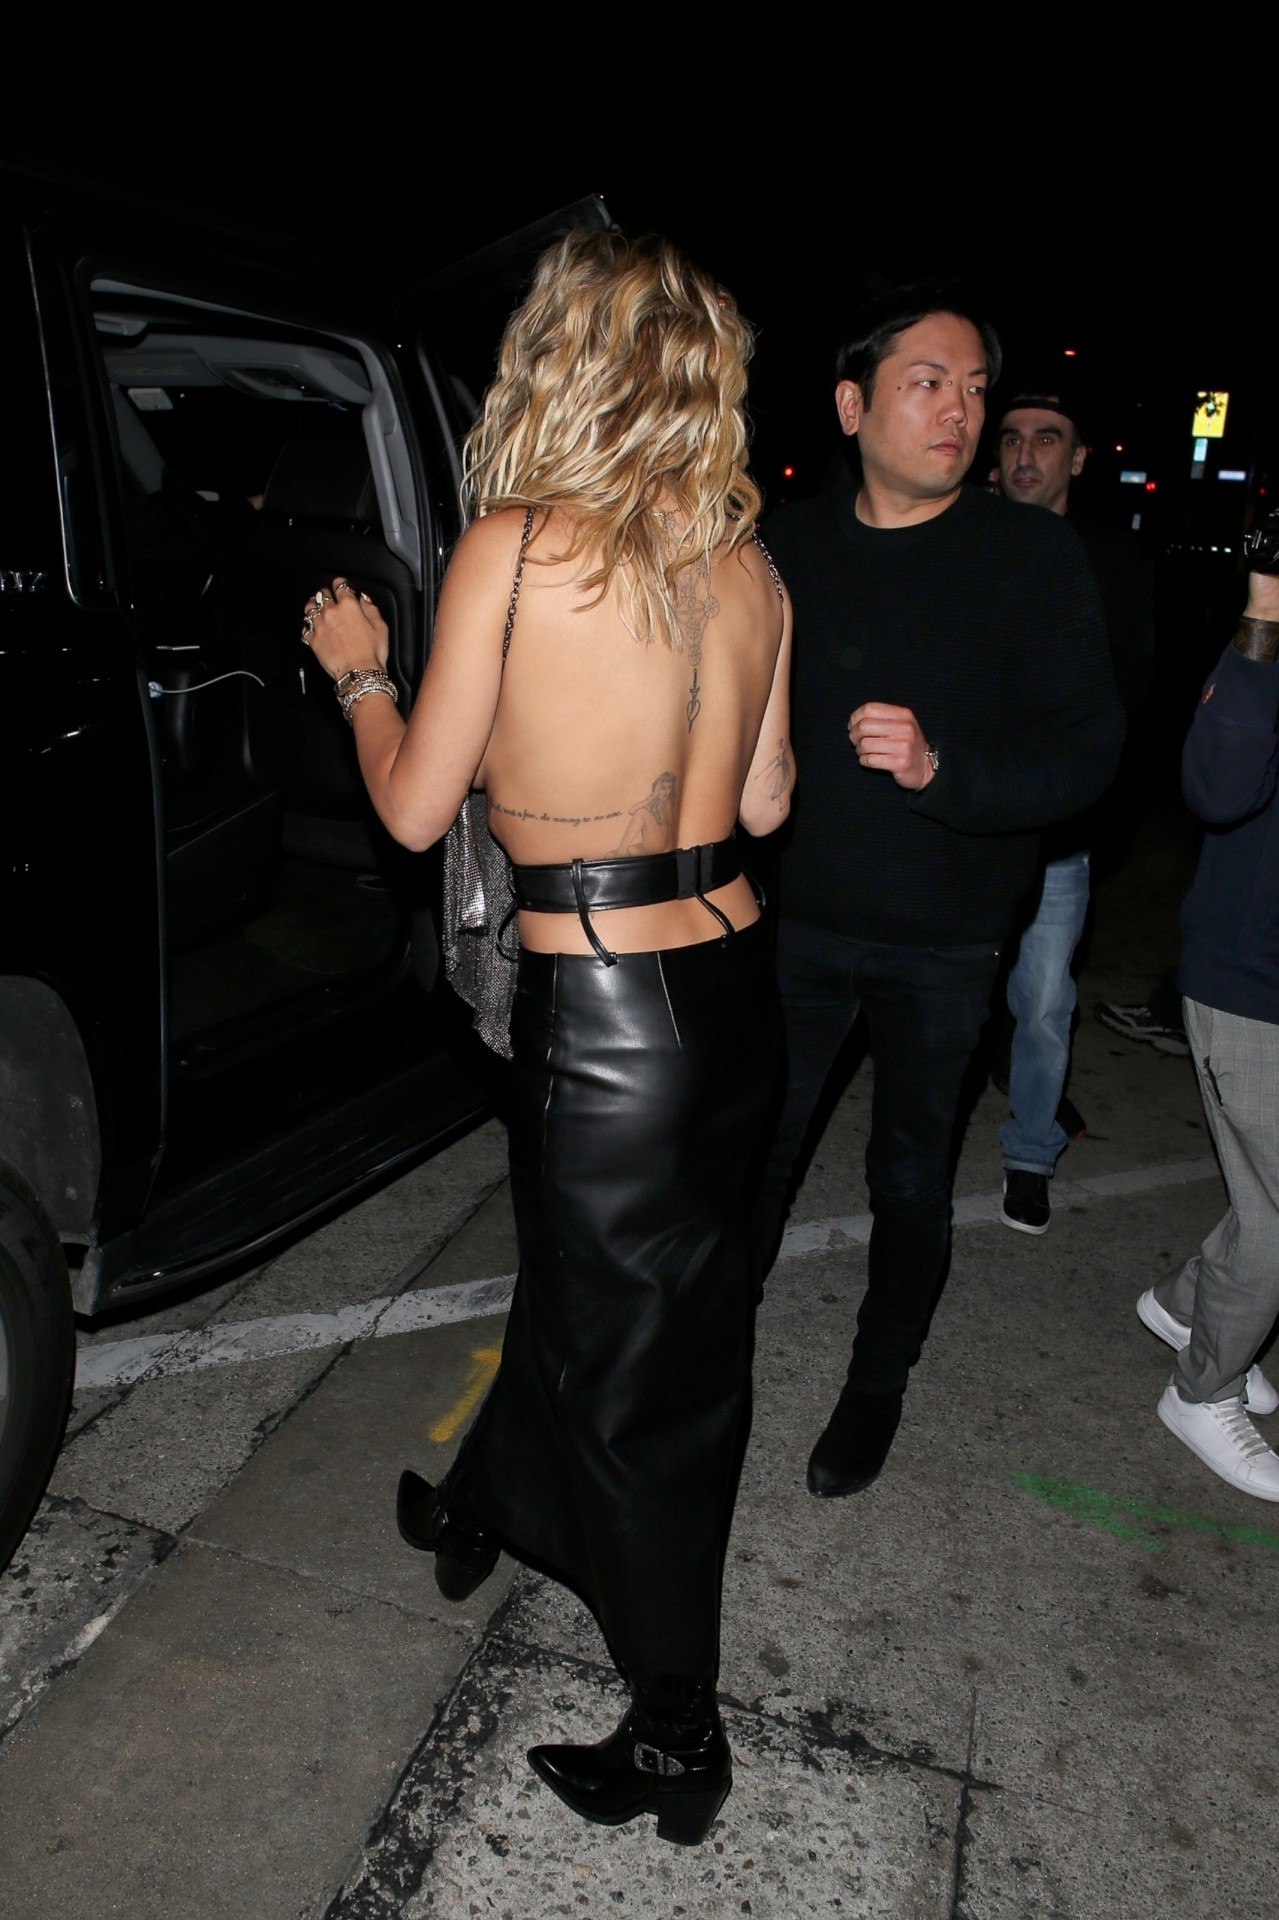 Rita Ora Braless See Through Top